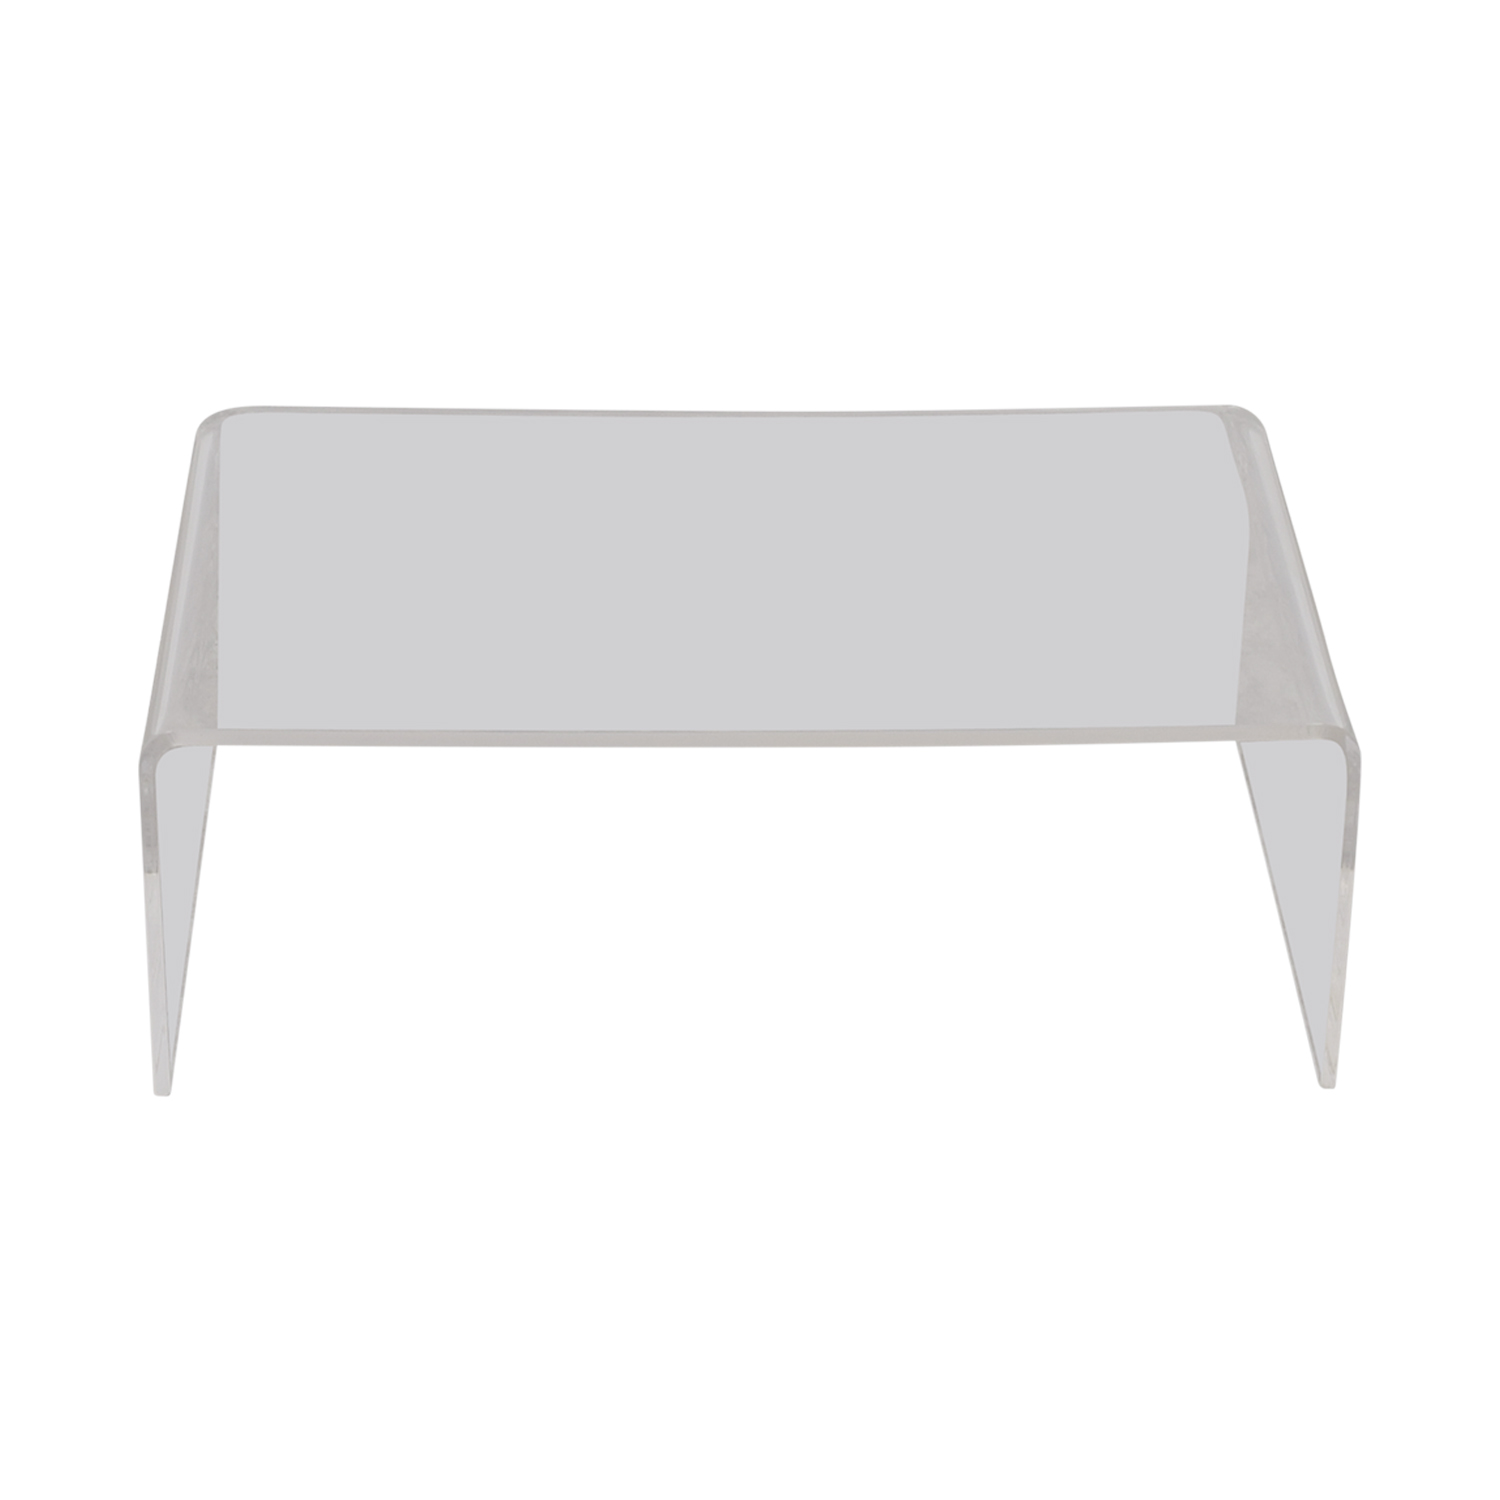 CB2 CB2 Peekaboo Acrylic Coffee Table